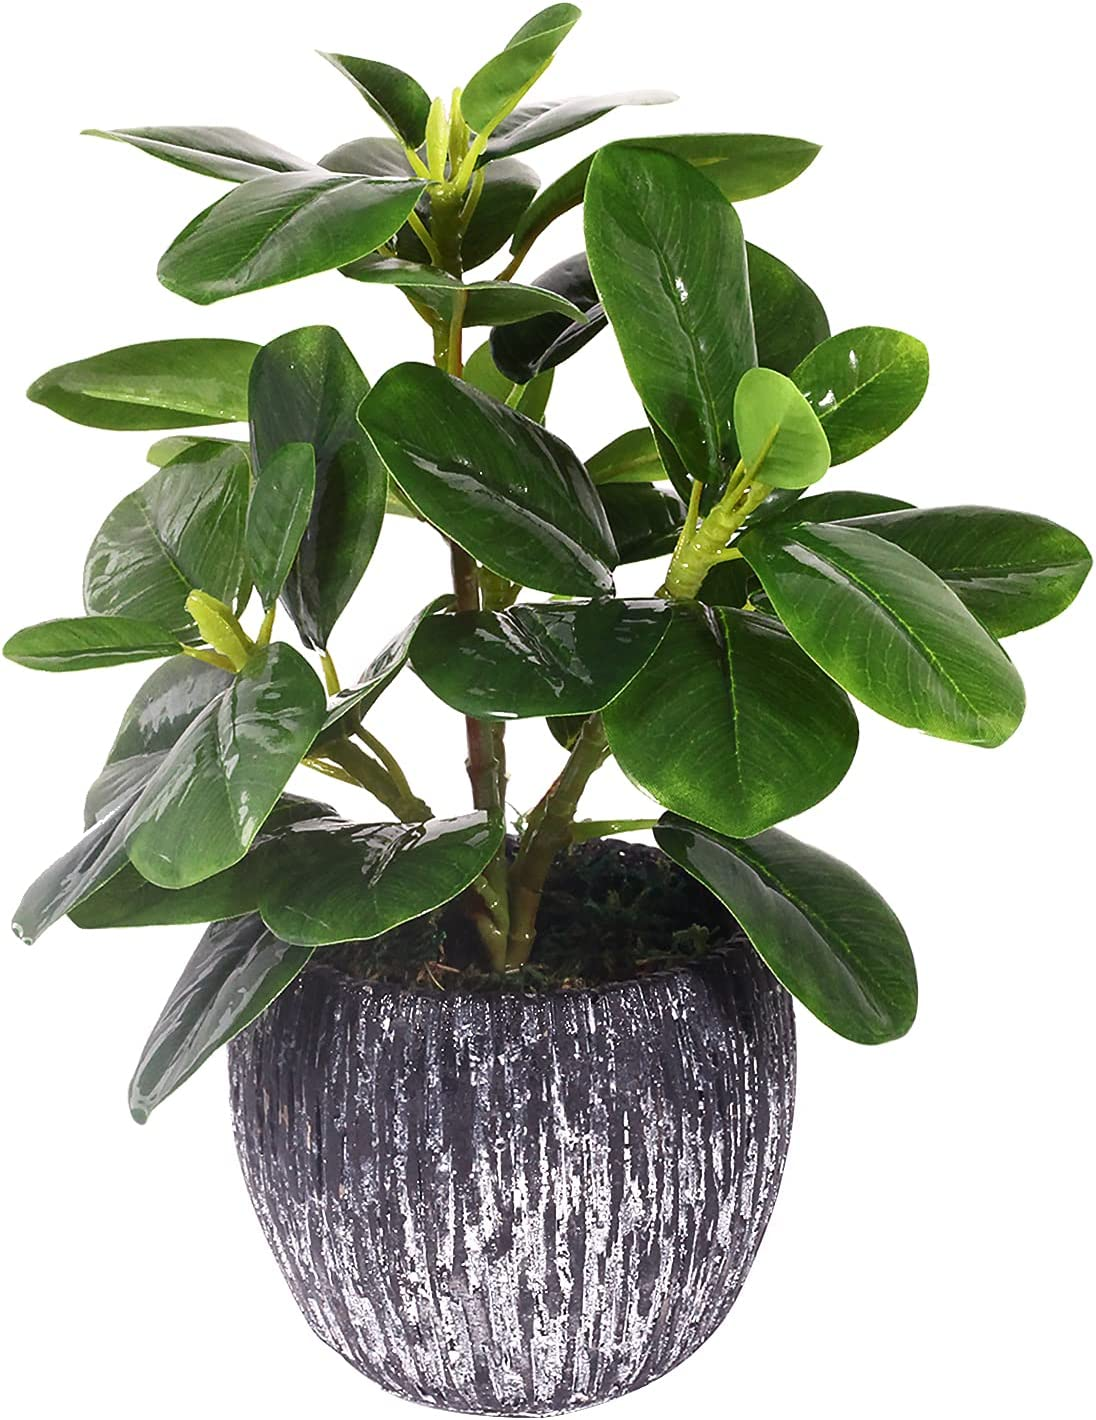 Artificial Potted Plant, Real Touch Artificial Oak Leaves Waterproof Fake Plants Indoor Outdoor, Eco Friendly Modern Concrete Greenery Plant Pots for Office Home Kitchen Shelf Farmhouse Decor